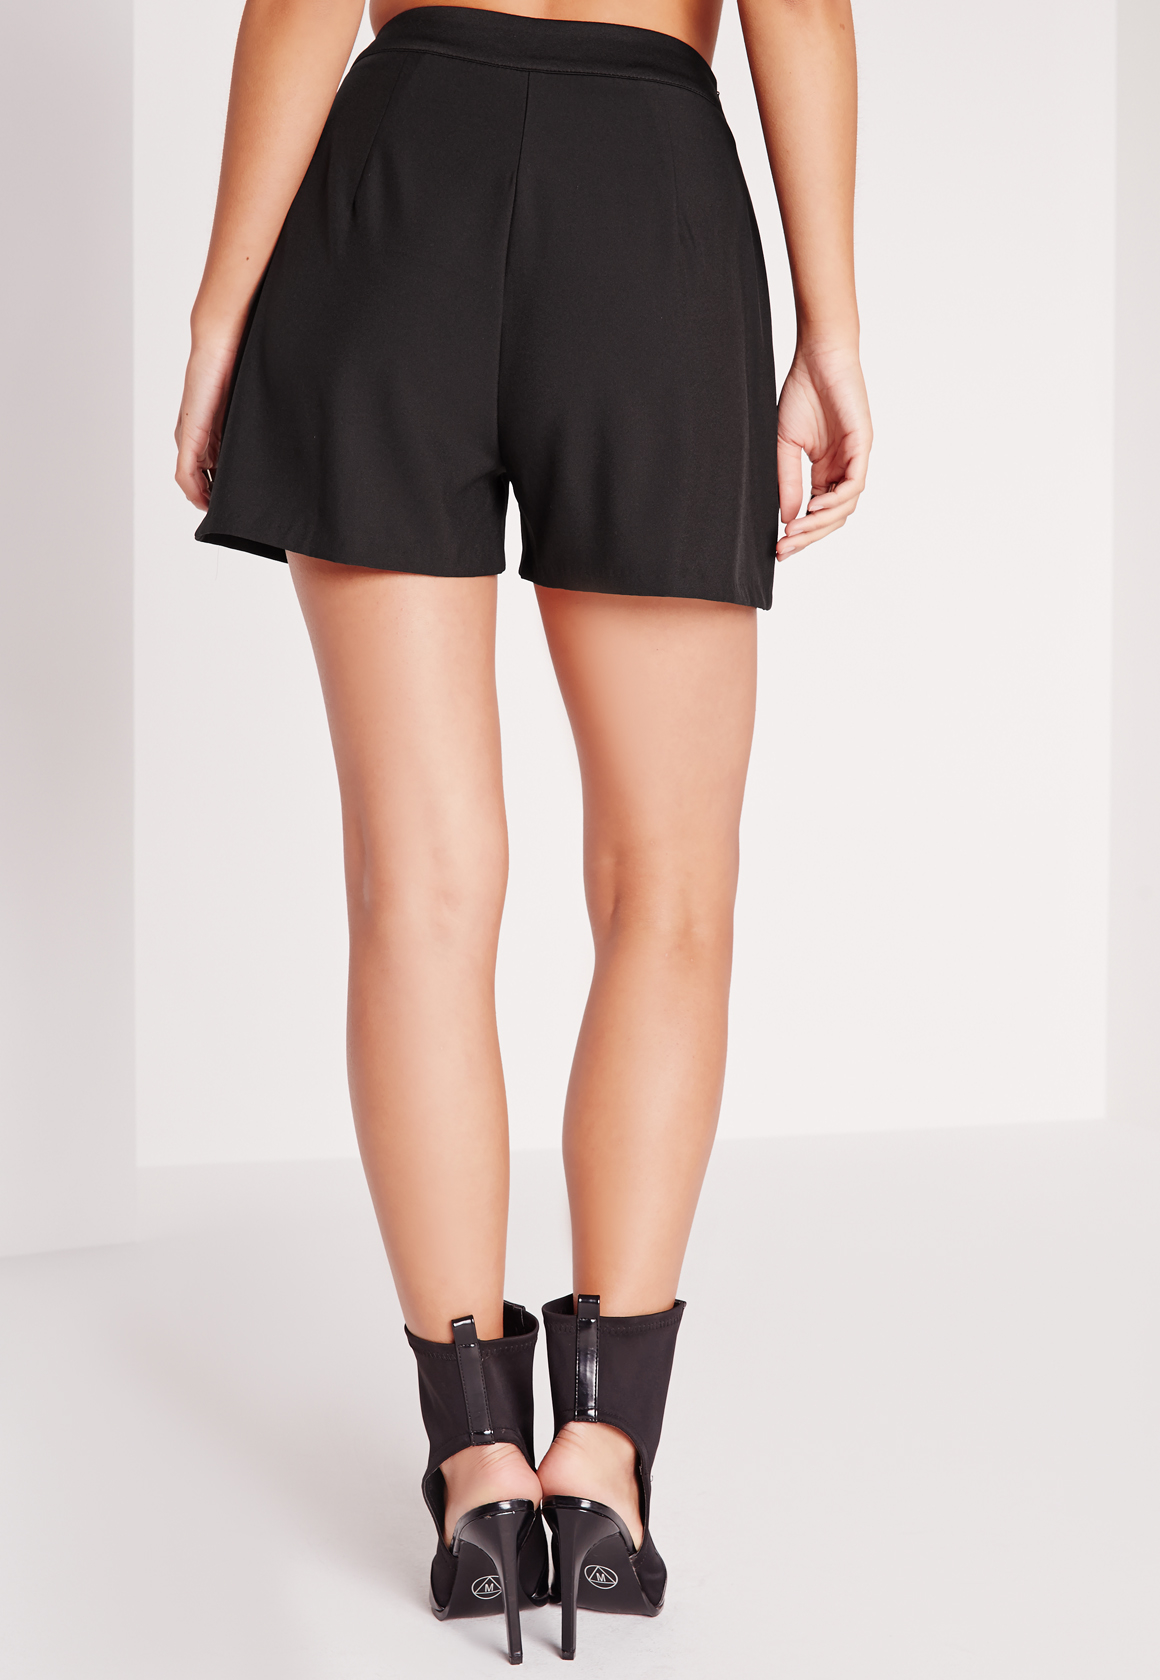 Missguided High Waisted Tailored Shorts Black in Black   Lyst